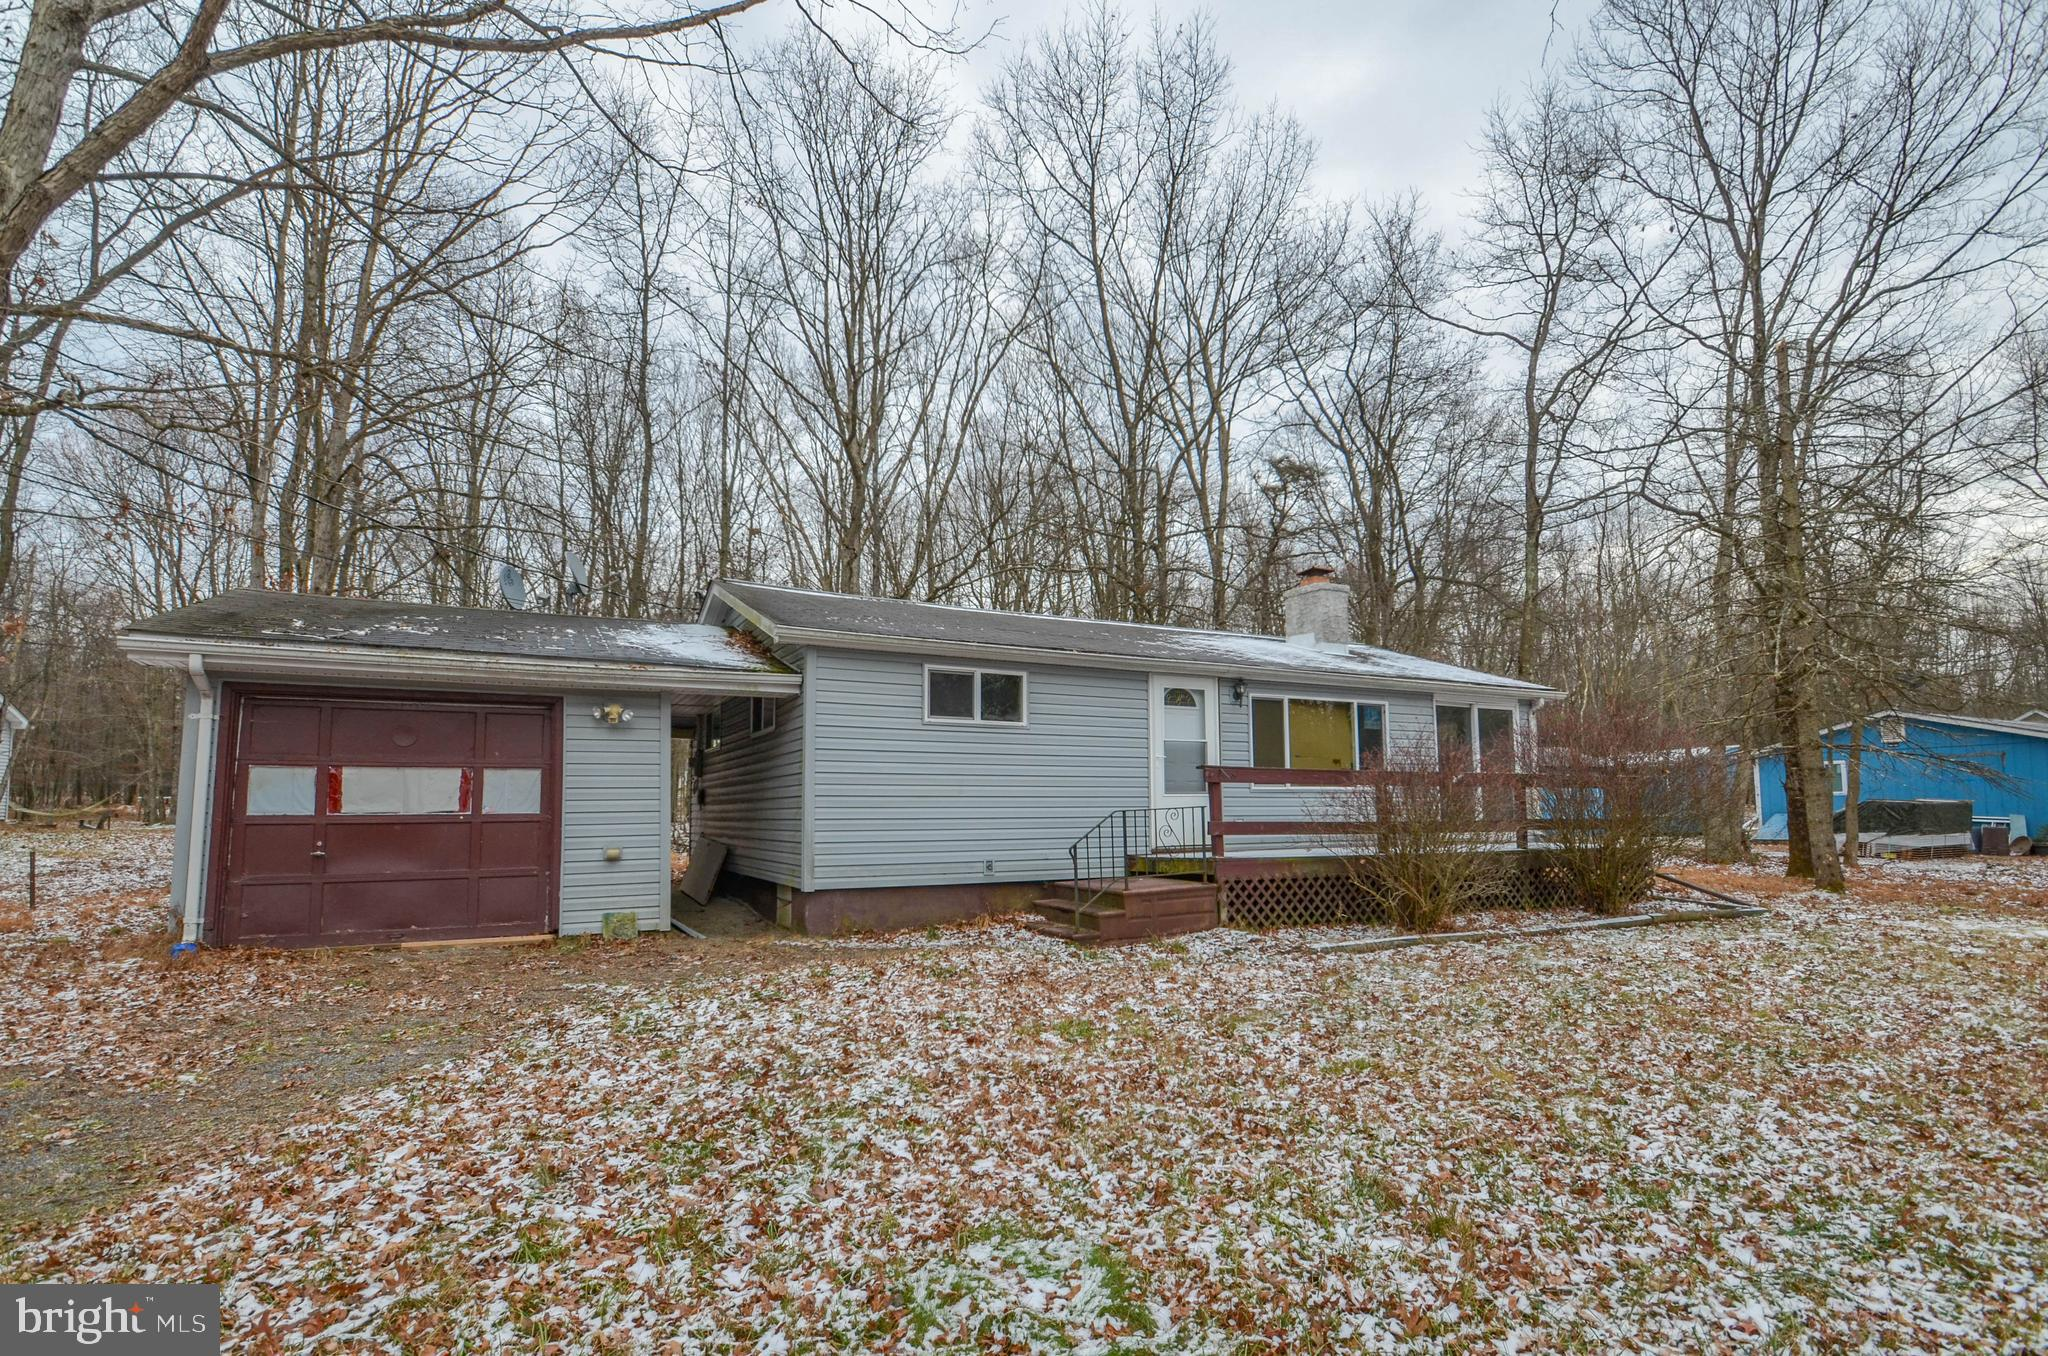 126 BUCK HILL ROAD, ALBRIGHTSVILLE, PA 18210